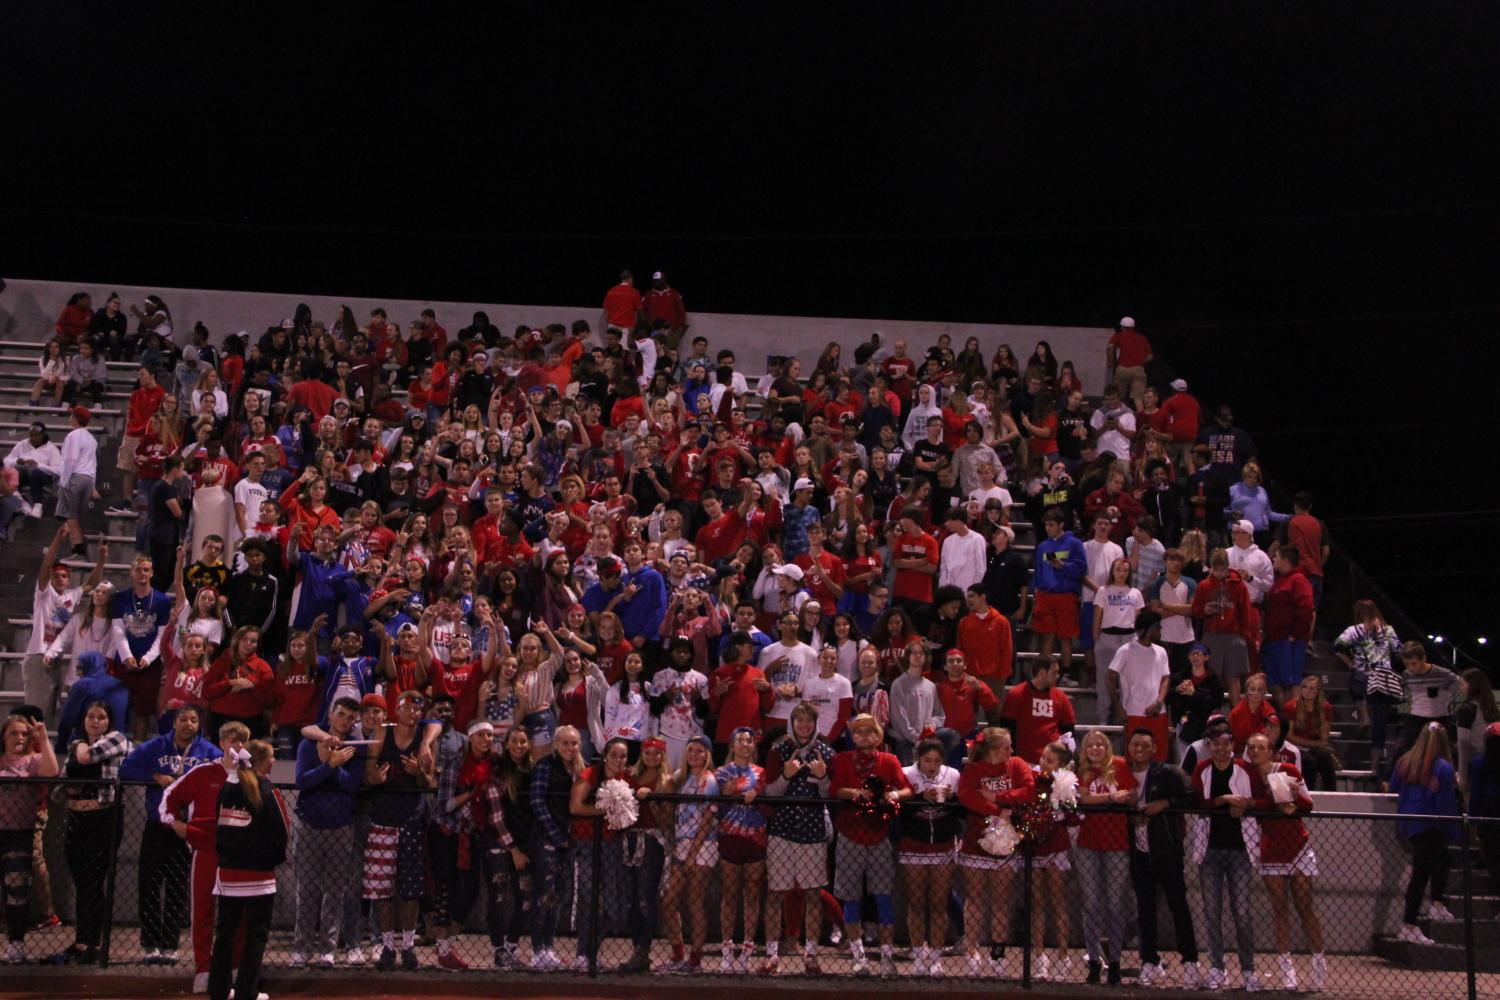 West+makes+a+differences+by+dedicating+a+football+game+theme+to+help+raise+money+for+hurricane+victims+in+Texas+by+dressing+in+there+state+flag+colors.+Students+ran+up+and+down+the+bleachers+collecting+money+for+the+victims.